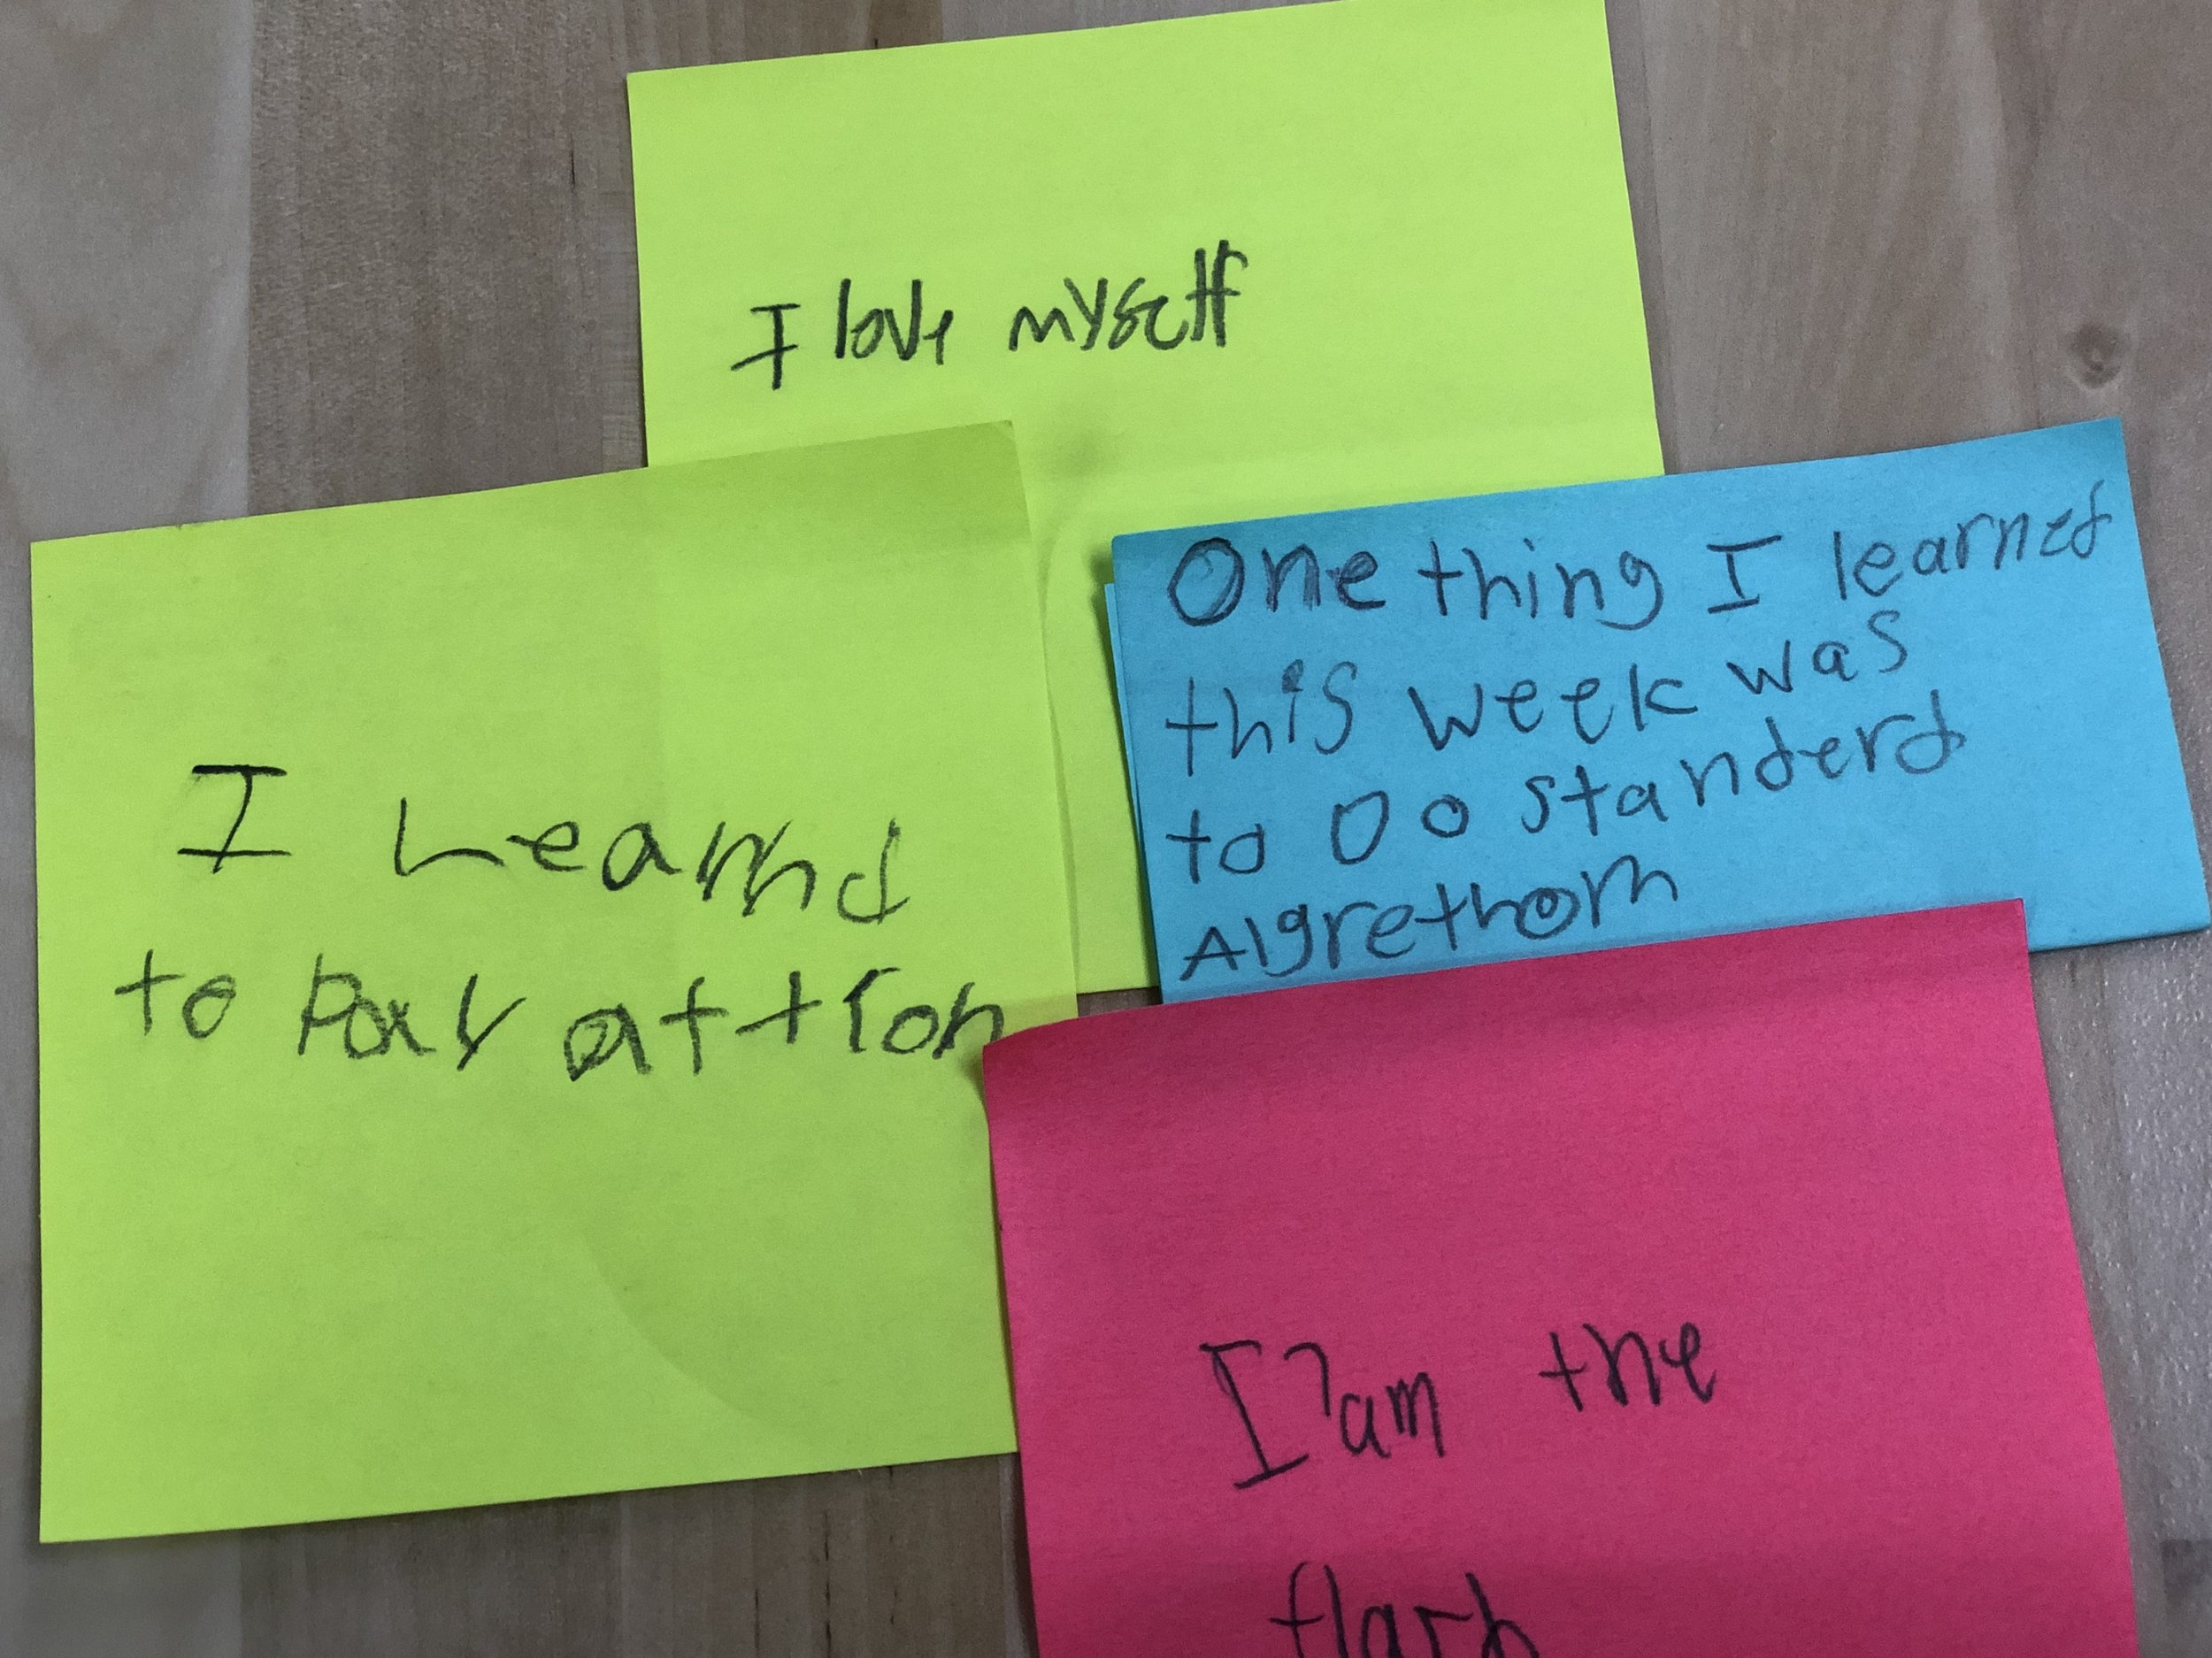 In case you aren't a teacher and find kid-spelling challenging: One thing I learned this week was to do standard algorithms. and I learned to pay attention.